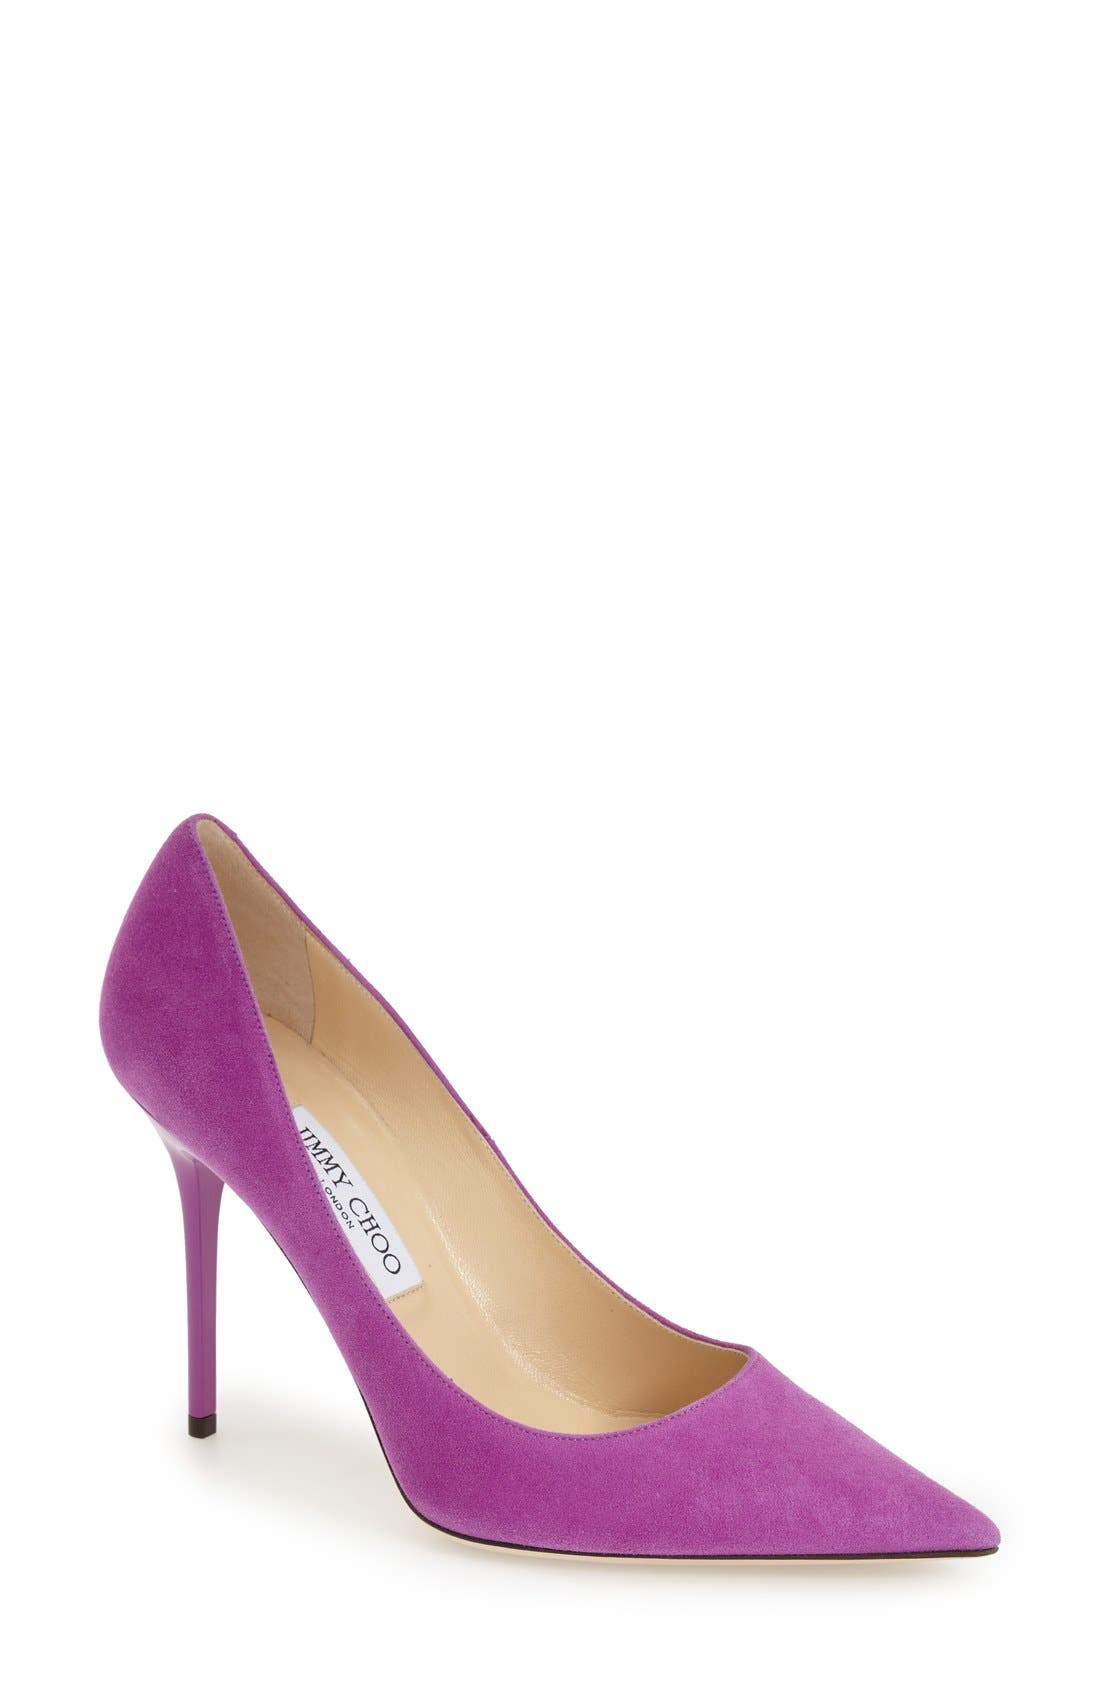 Main Image - Jimmy Choo 'Abel' Pump